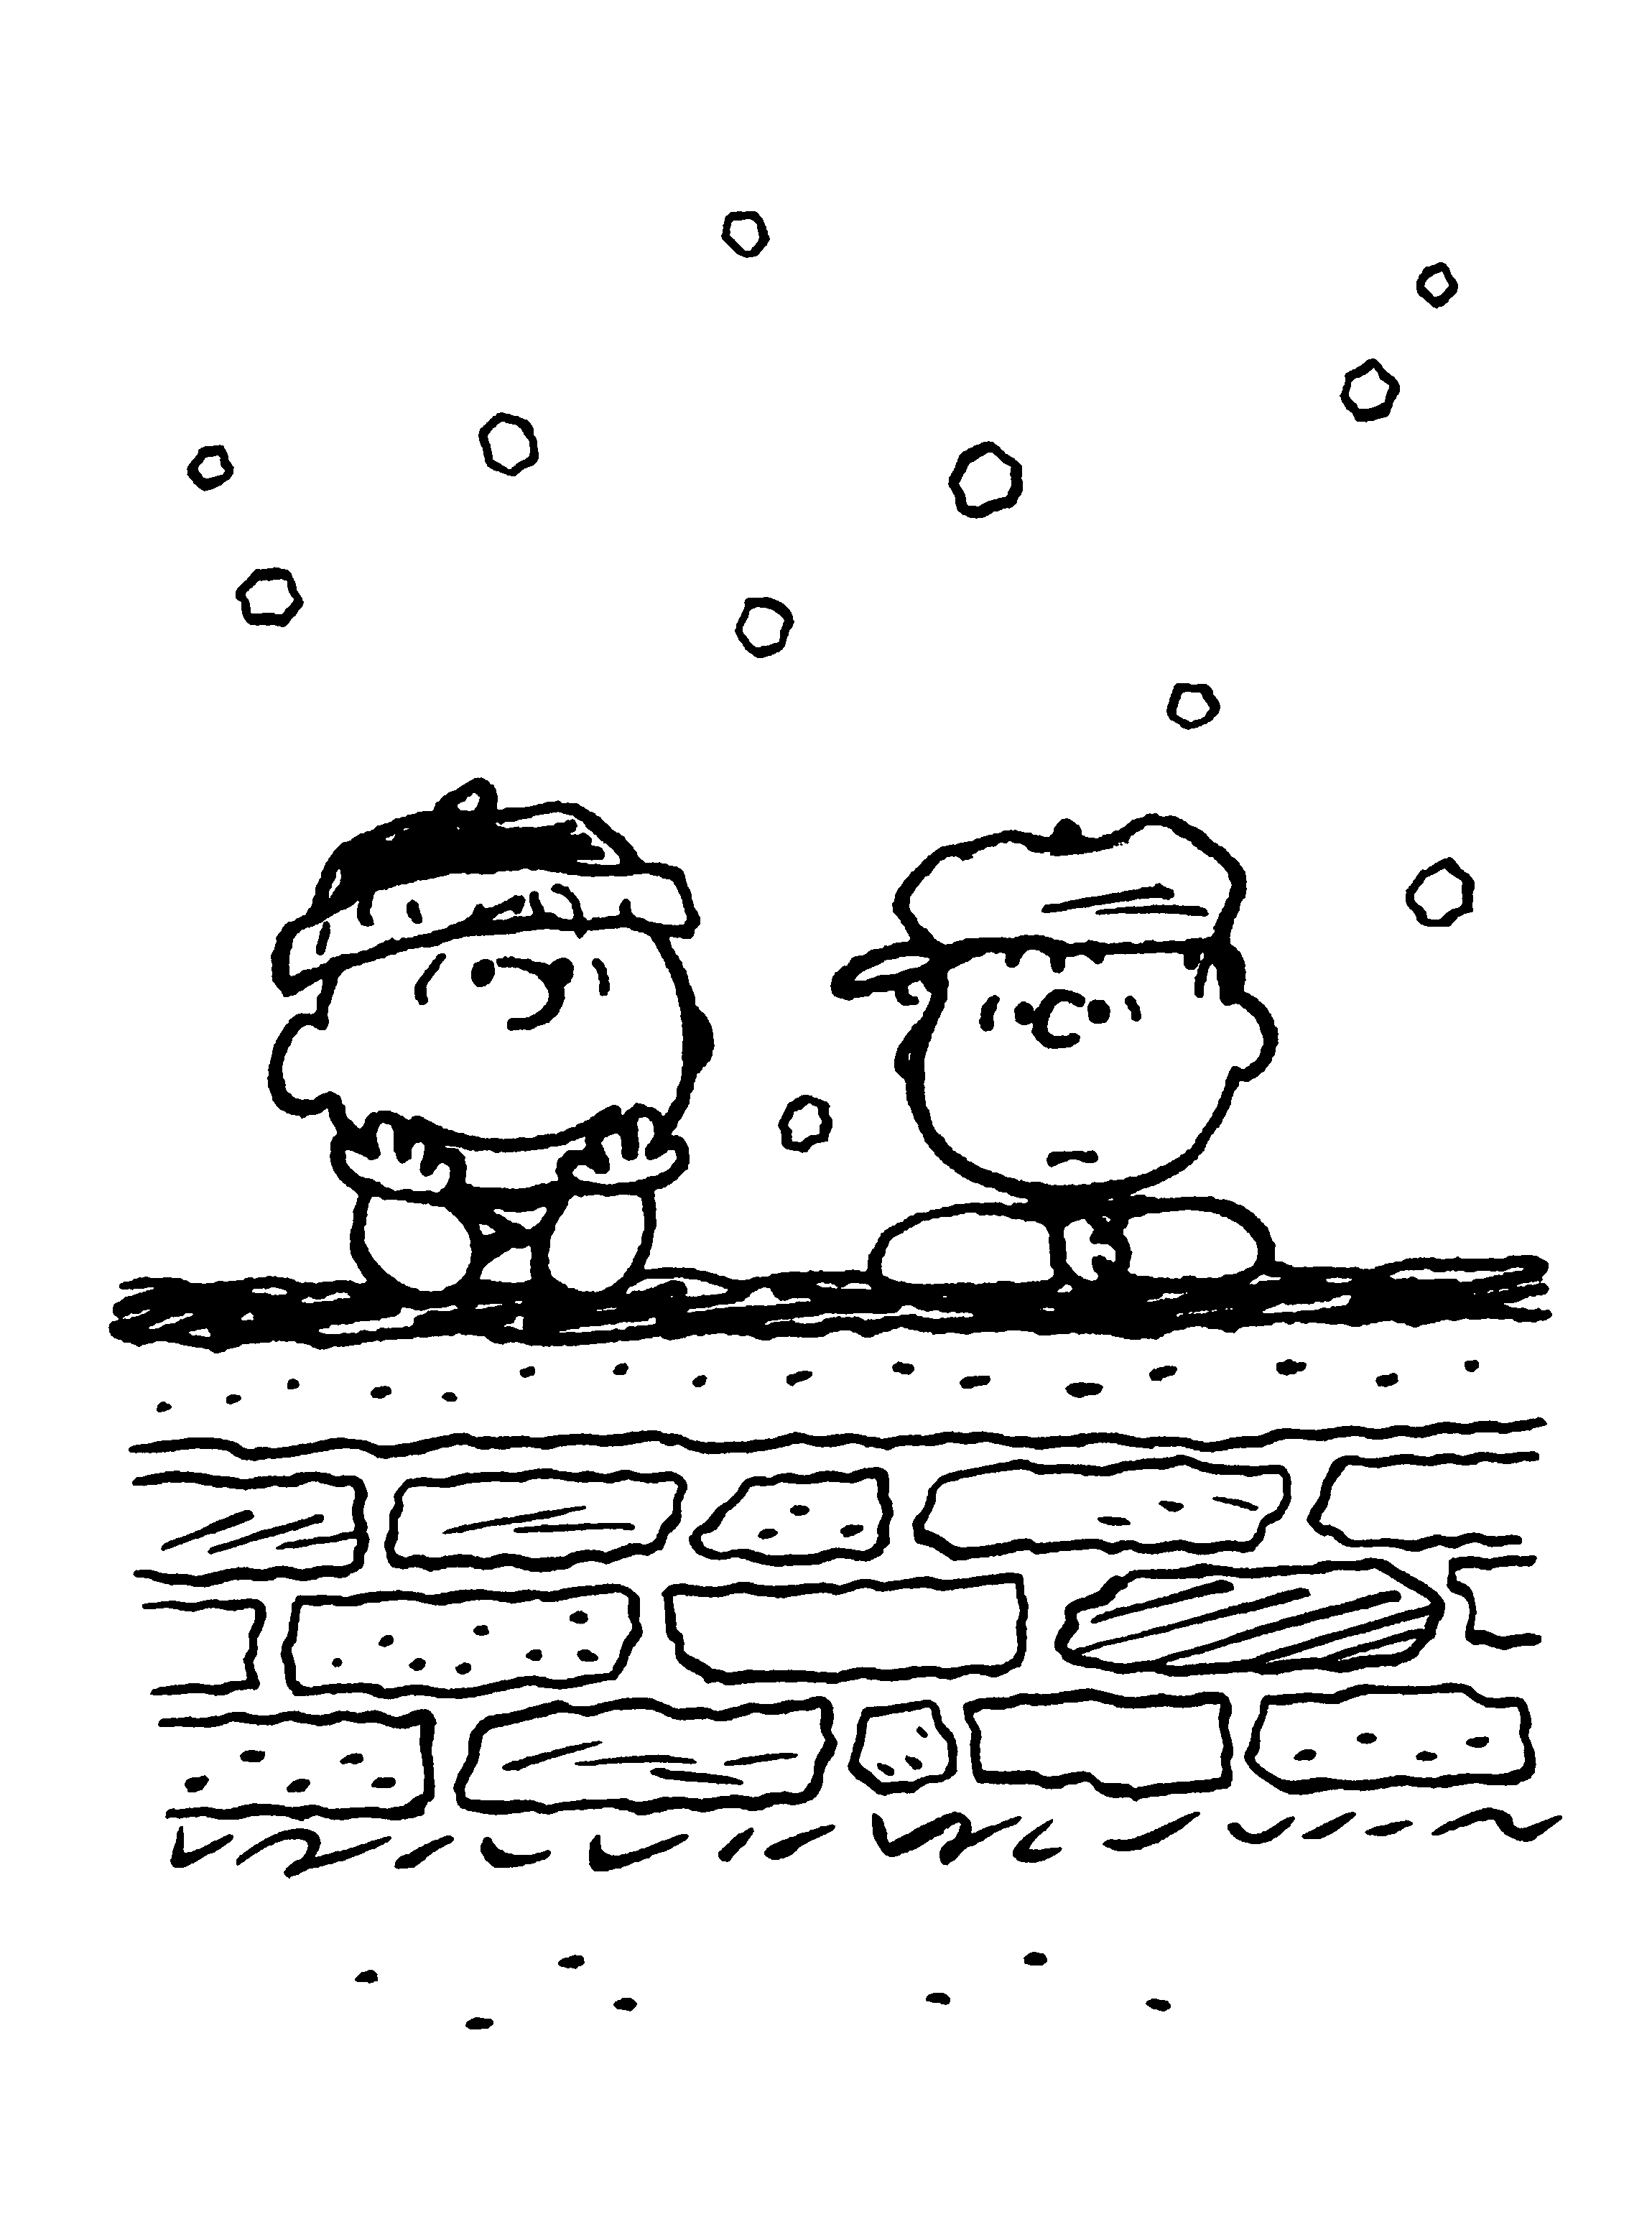 Charlie Brown and Linus van Pelt | Cartoon characters | Pinterest ...